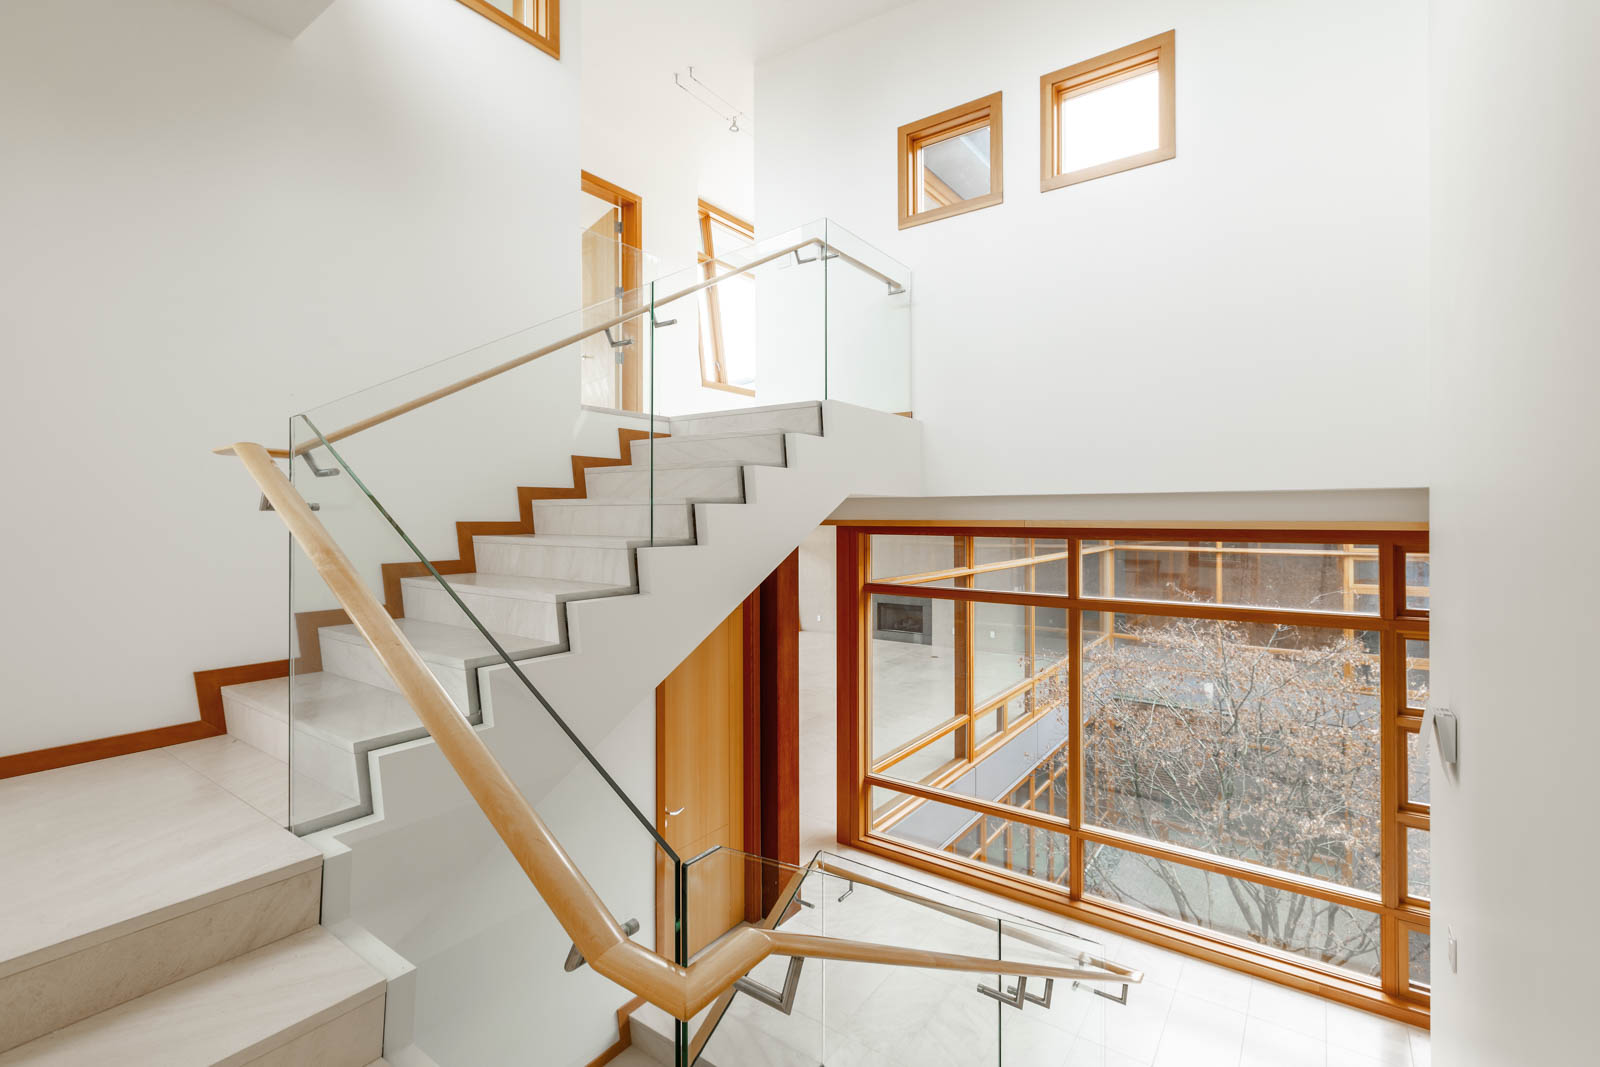 Interior staircase of West Vancouver luxury rental home.